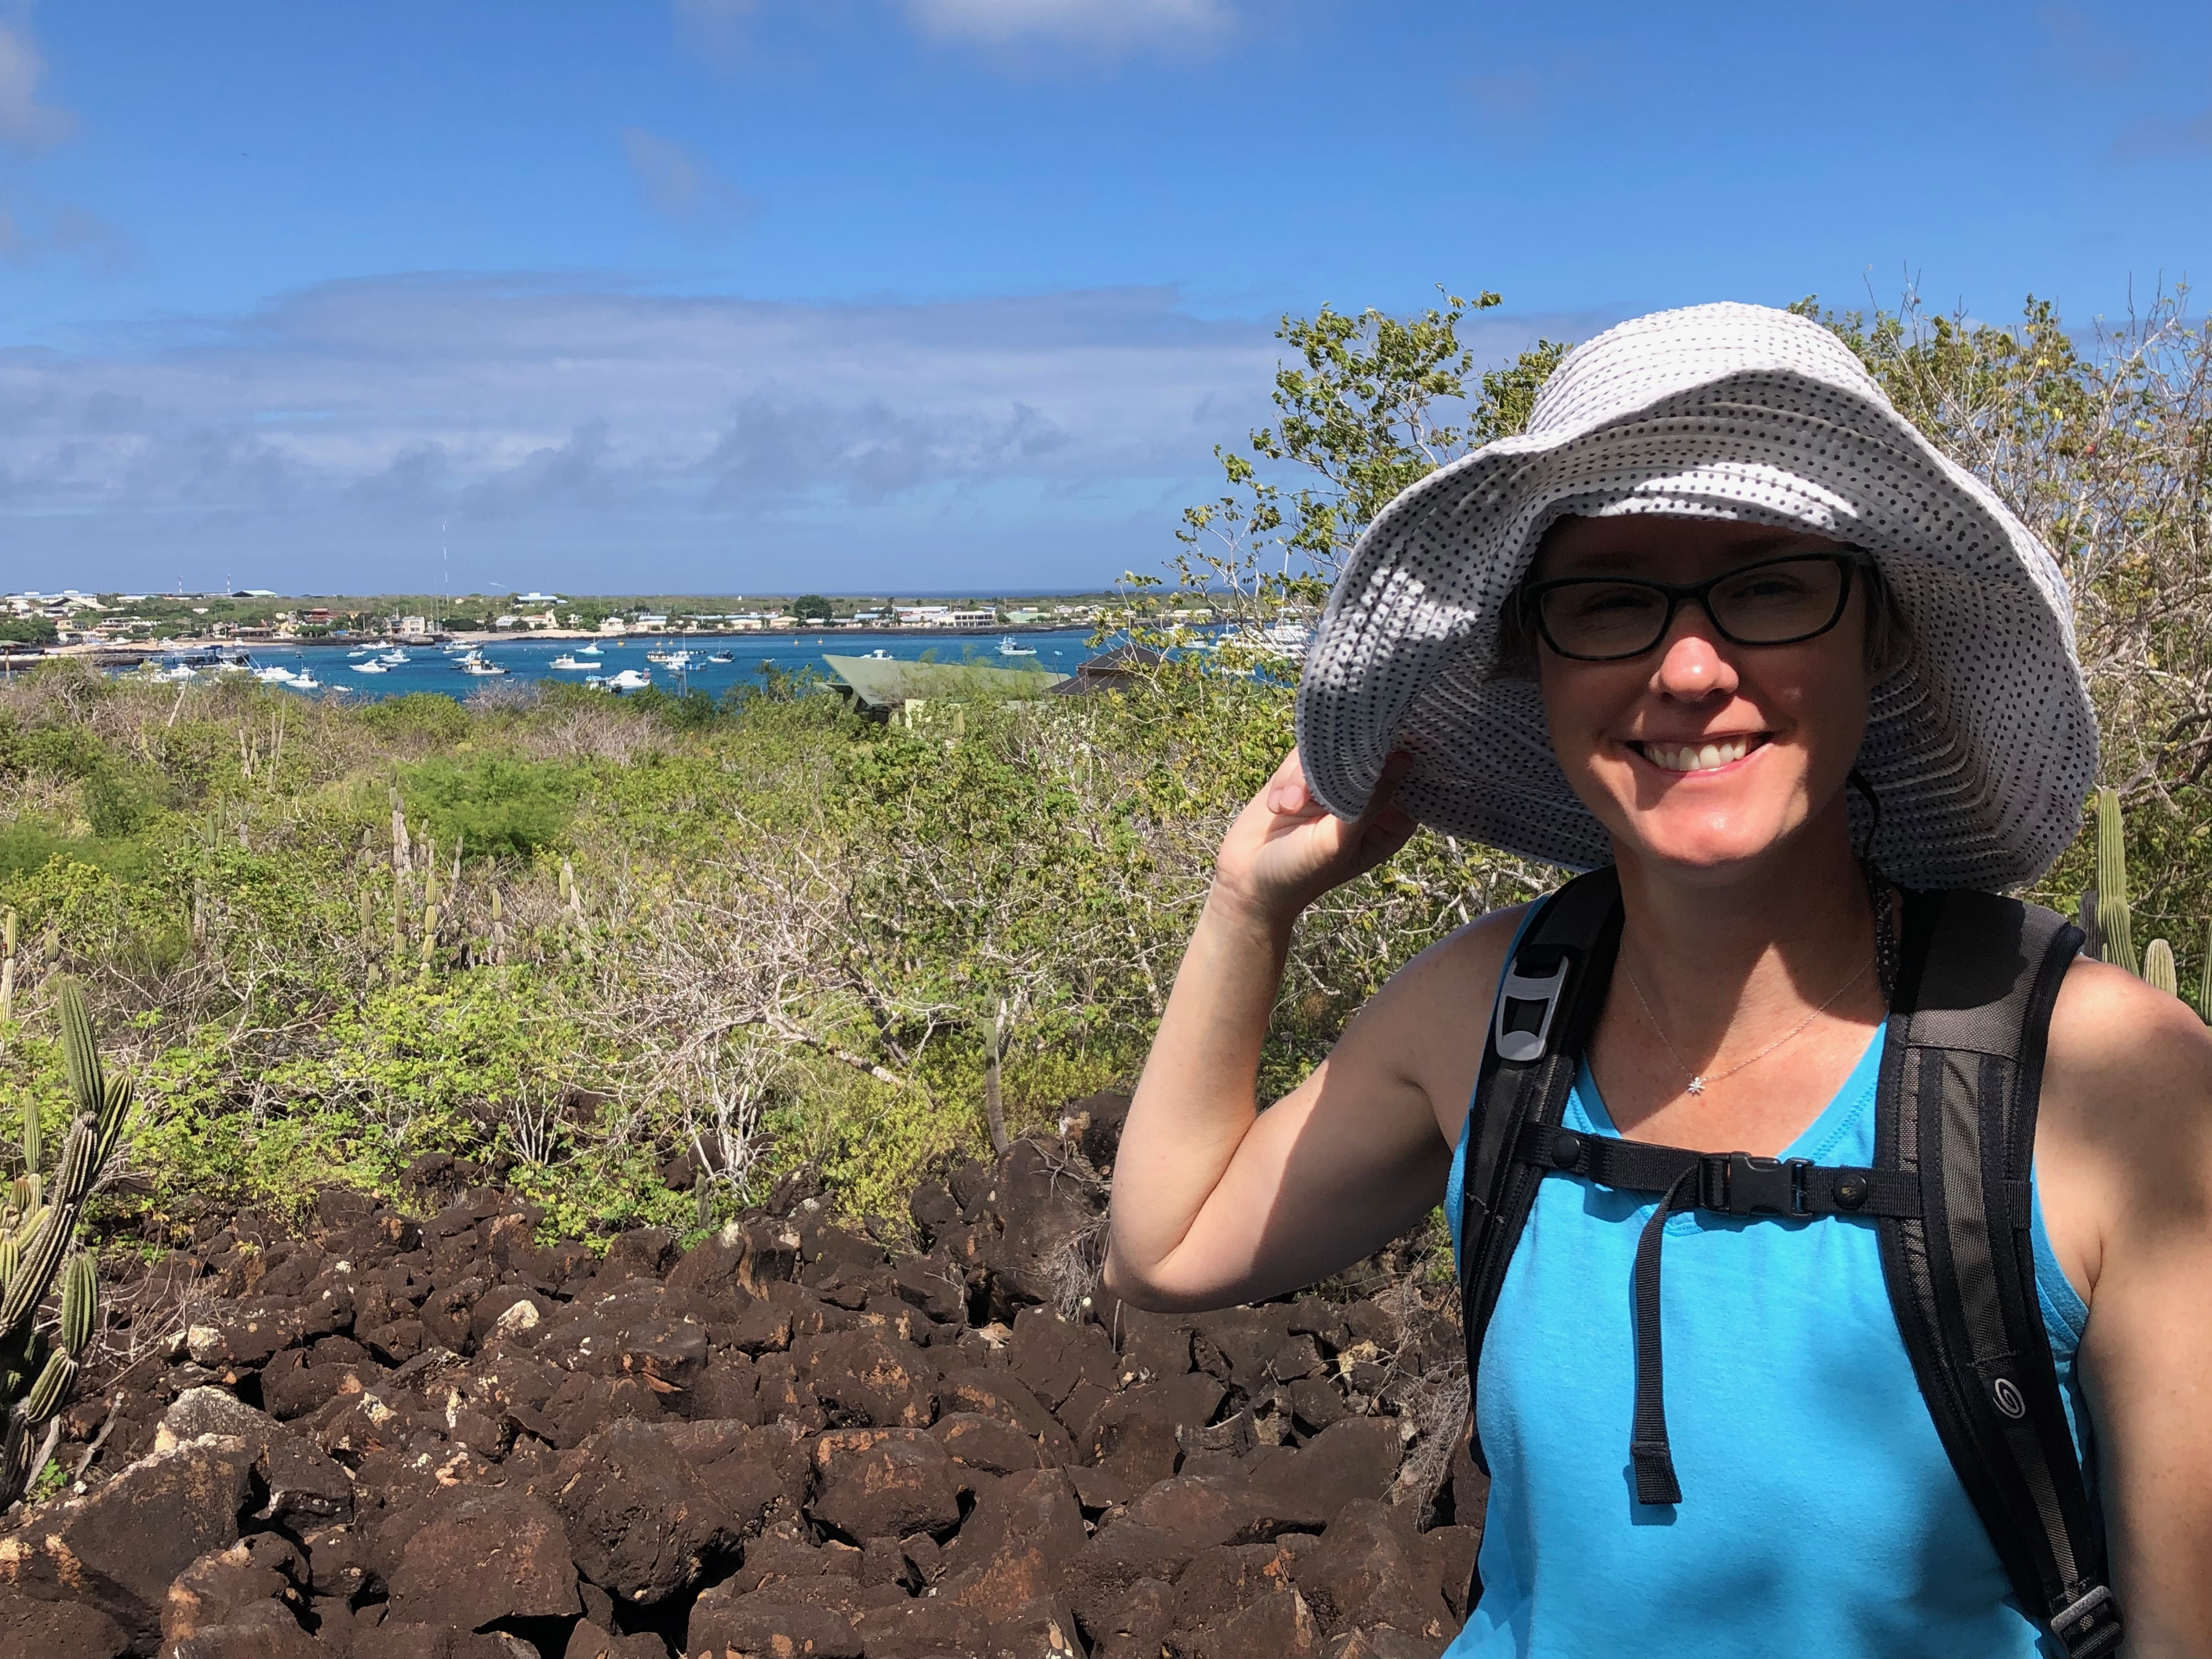 Meg Blanchard went to the Galapagos Islands to provide professional development for teachers